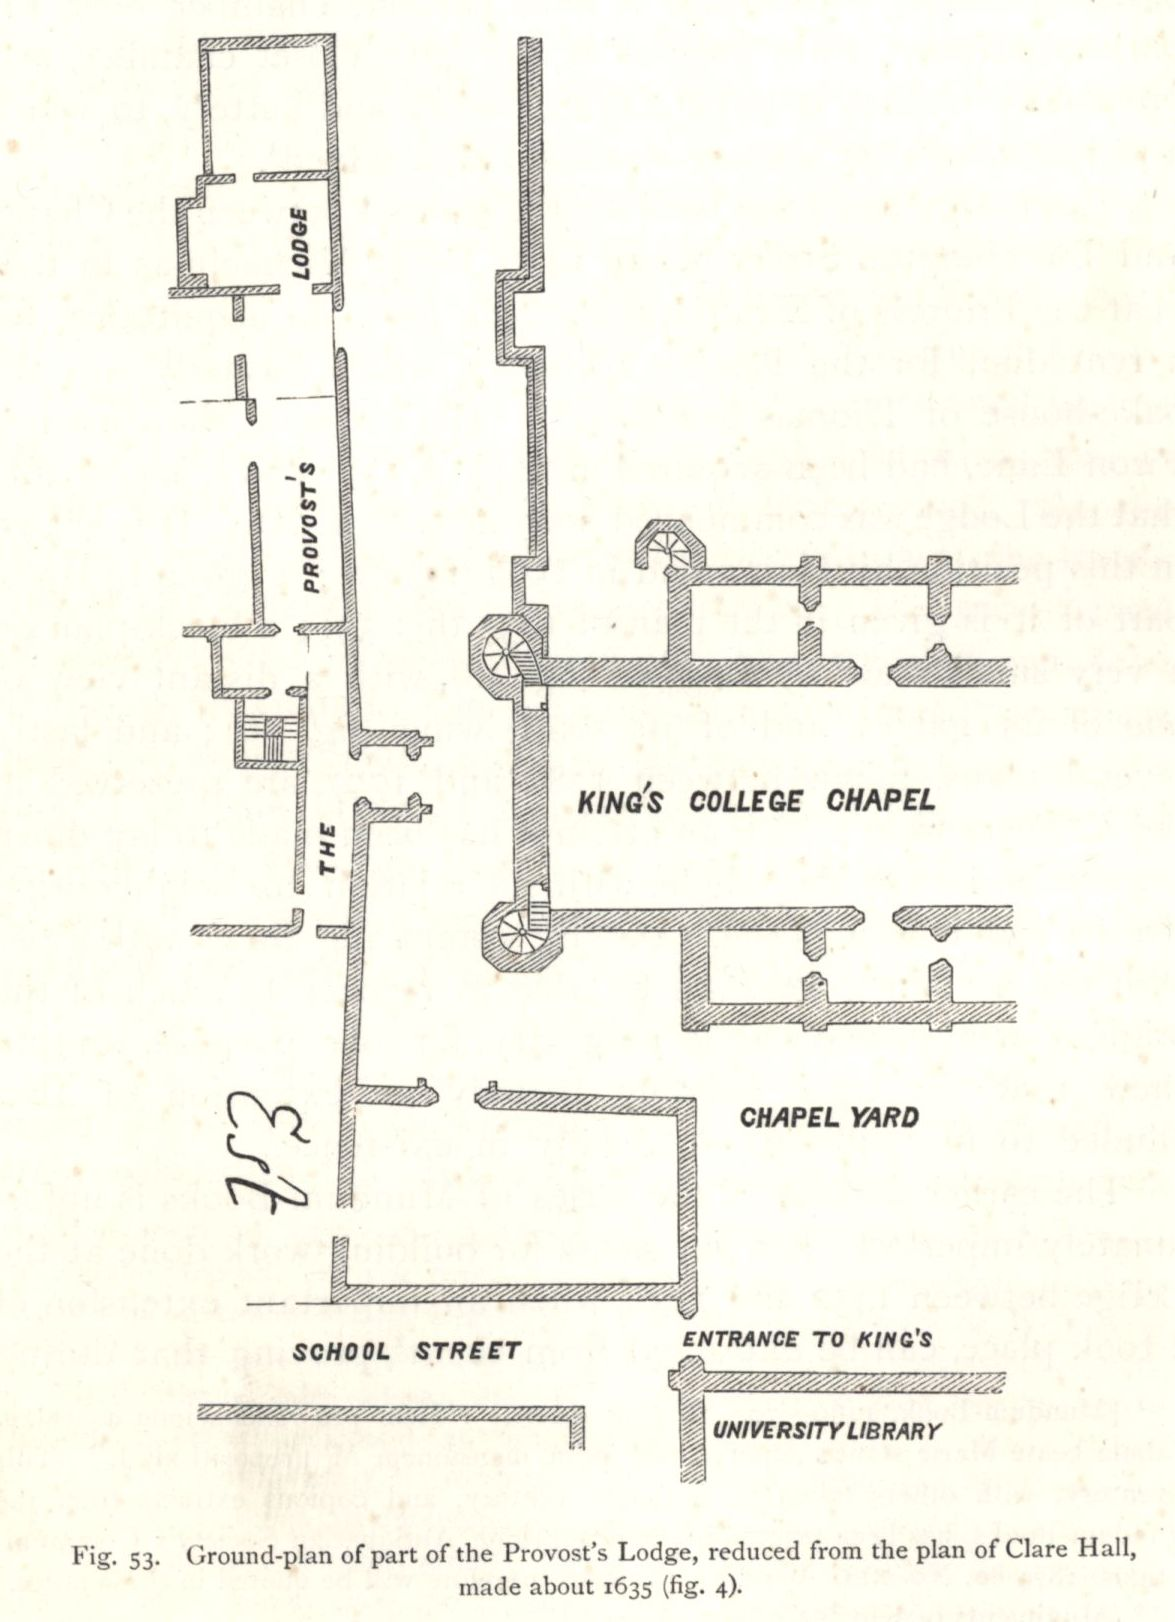 Ground plan of part of the Provost's Lodge, reduced from the plan of Clare Hall, made about 1635. [Willis and Clark, vol. 1, p. 541, fig. 53]